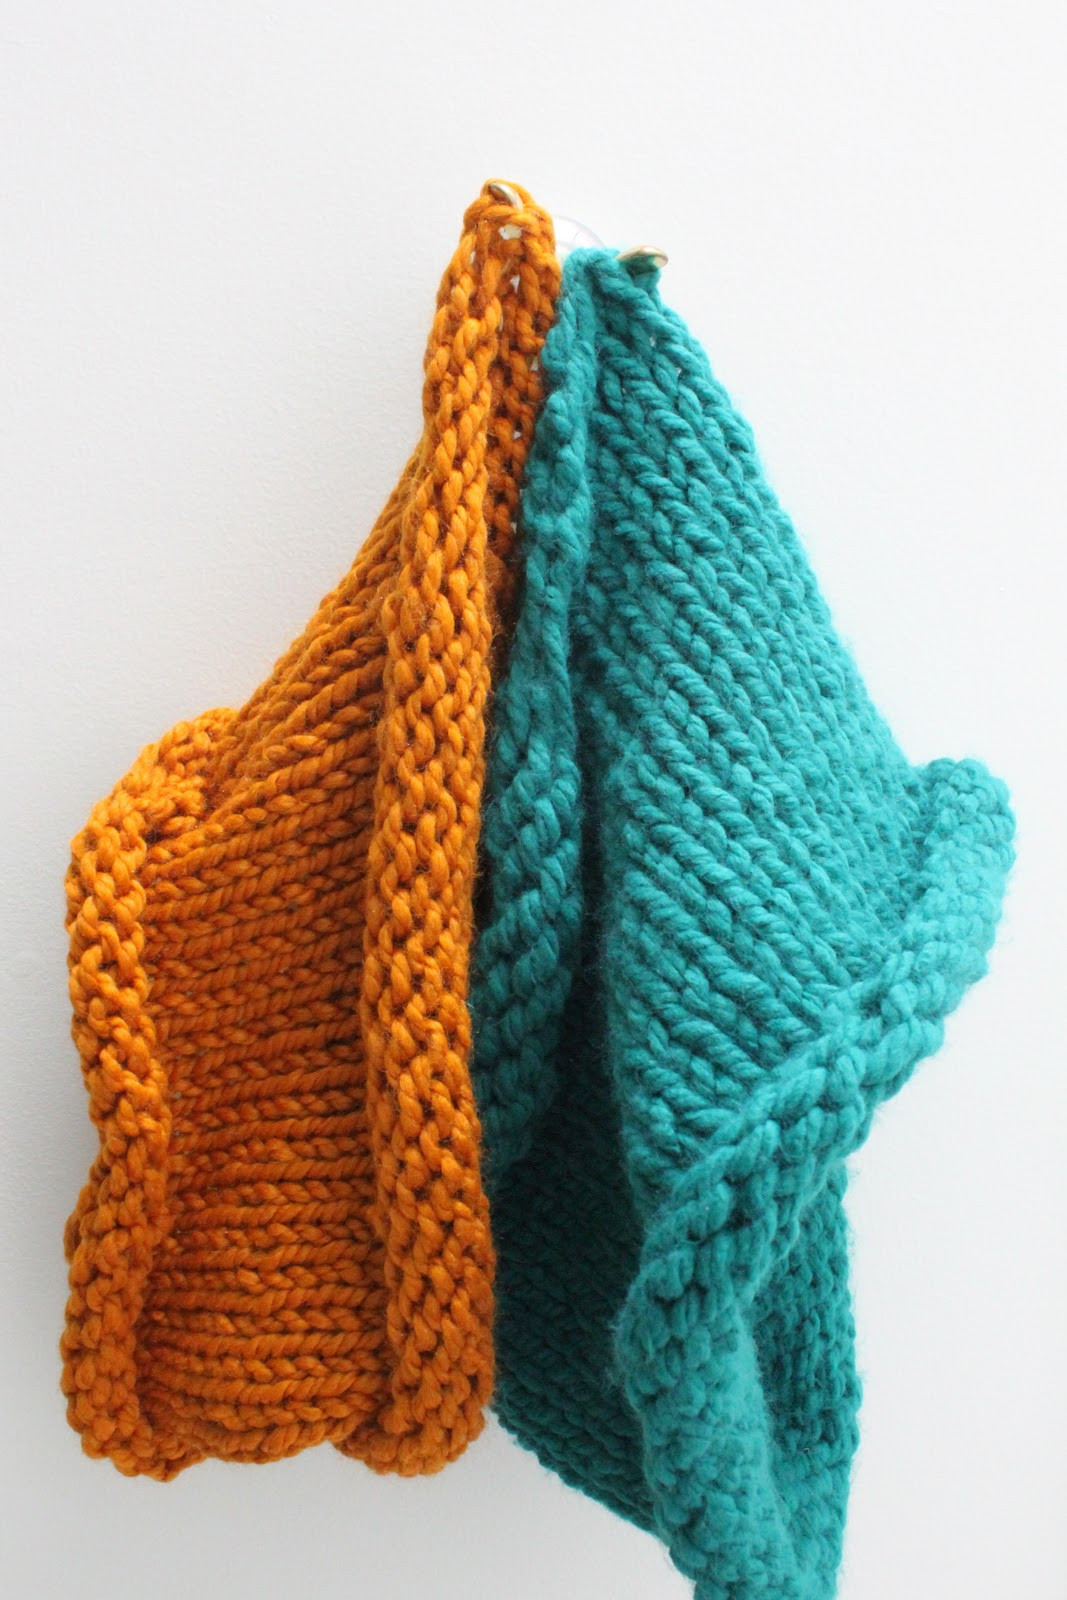 Chunky Knitting Patterns Beautiful Knit Cowl Of the Chunky Variety A Tutorial Smashed Of Incredible 44 Pics Chunky Knitting Patterns